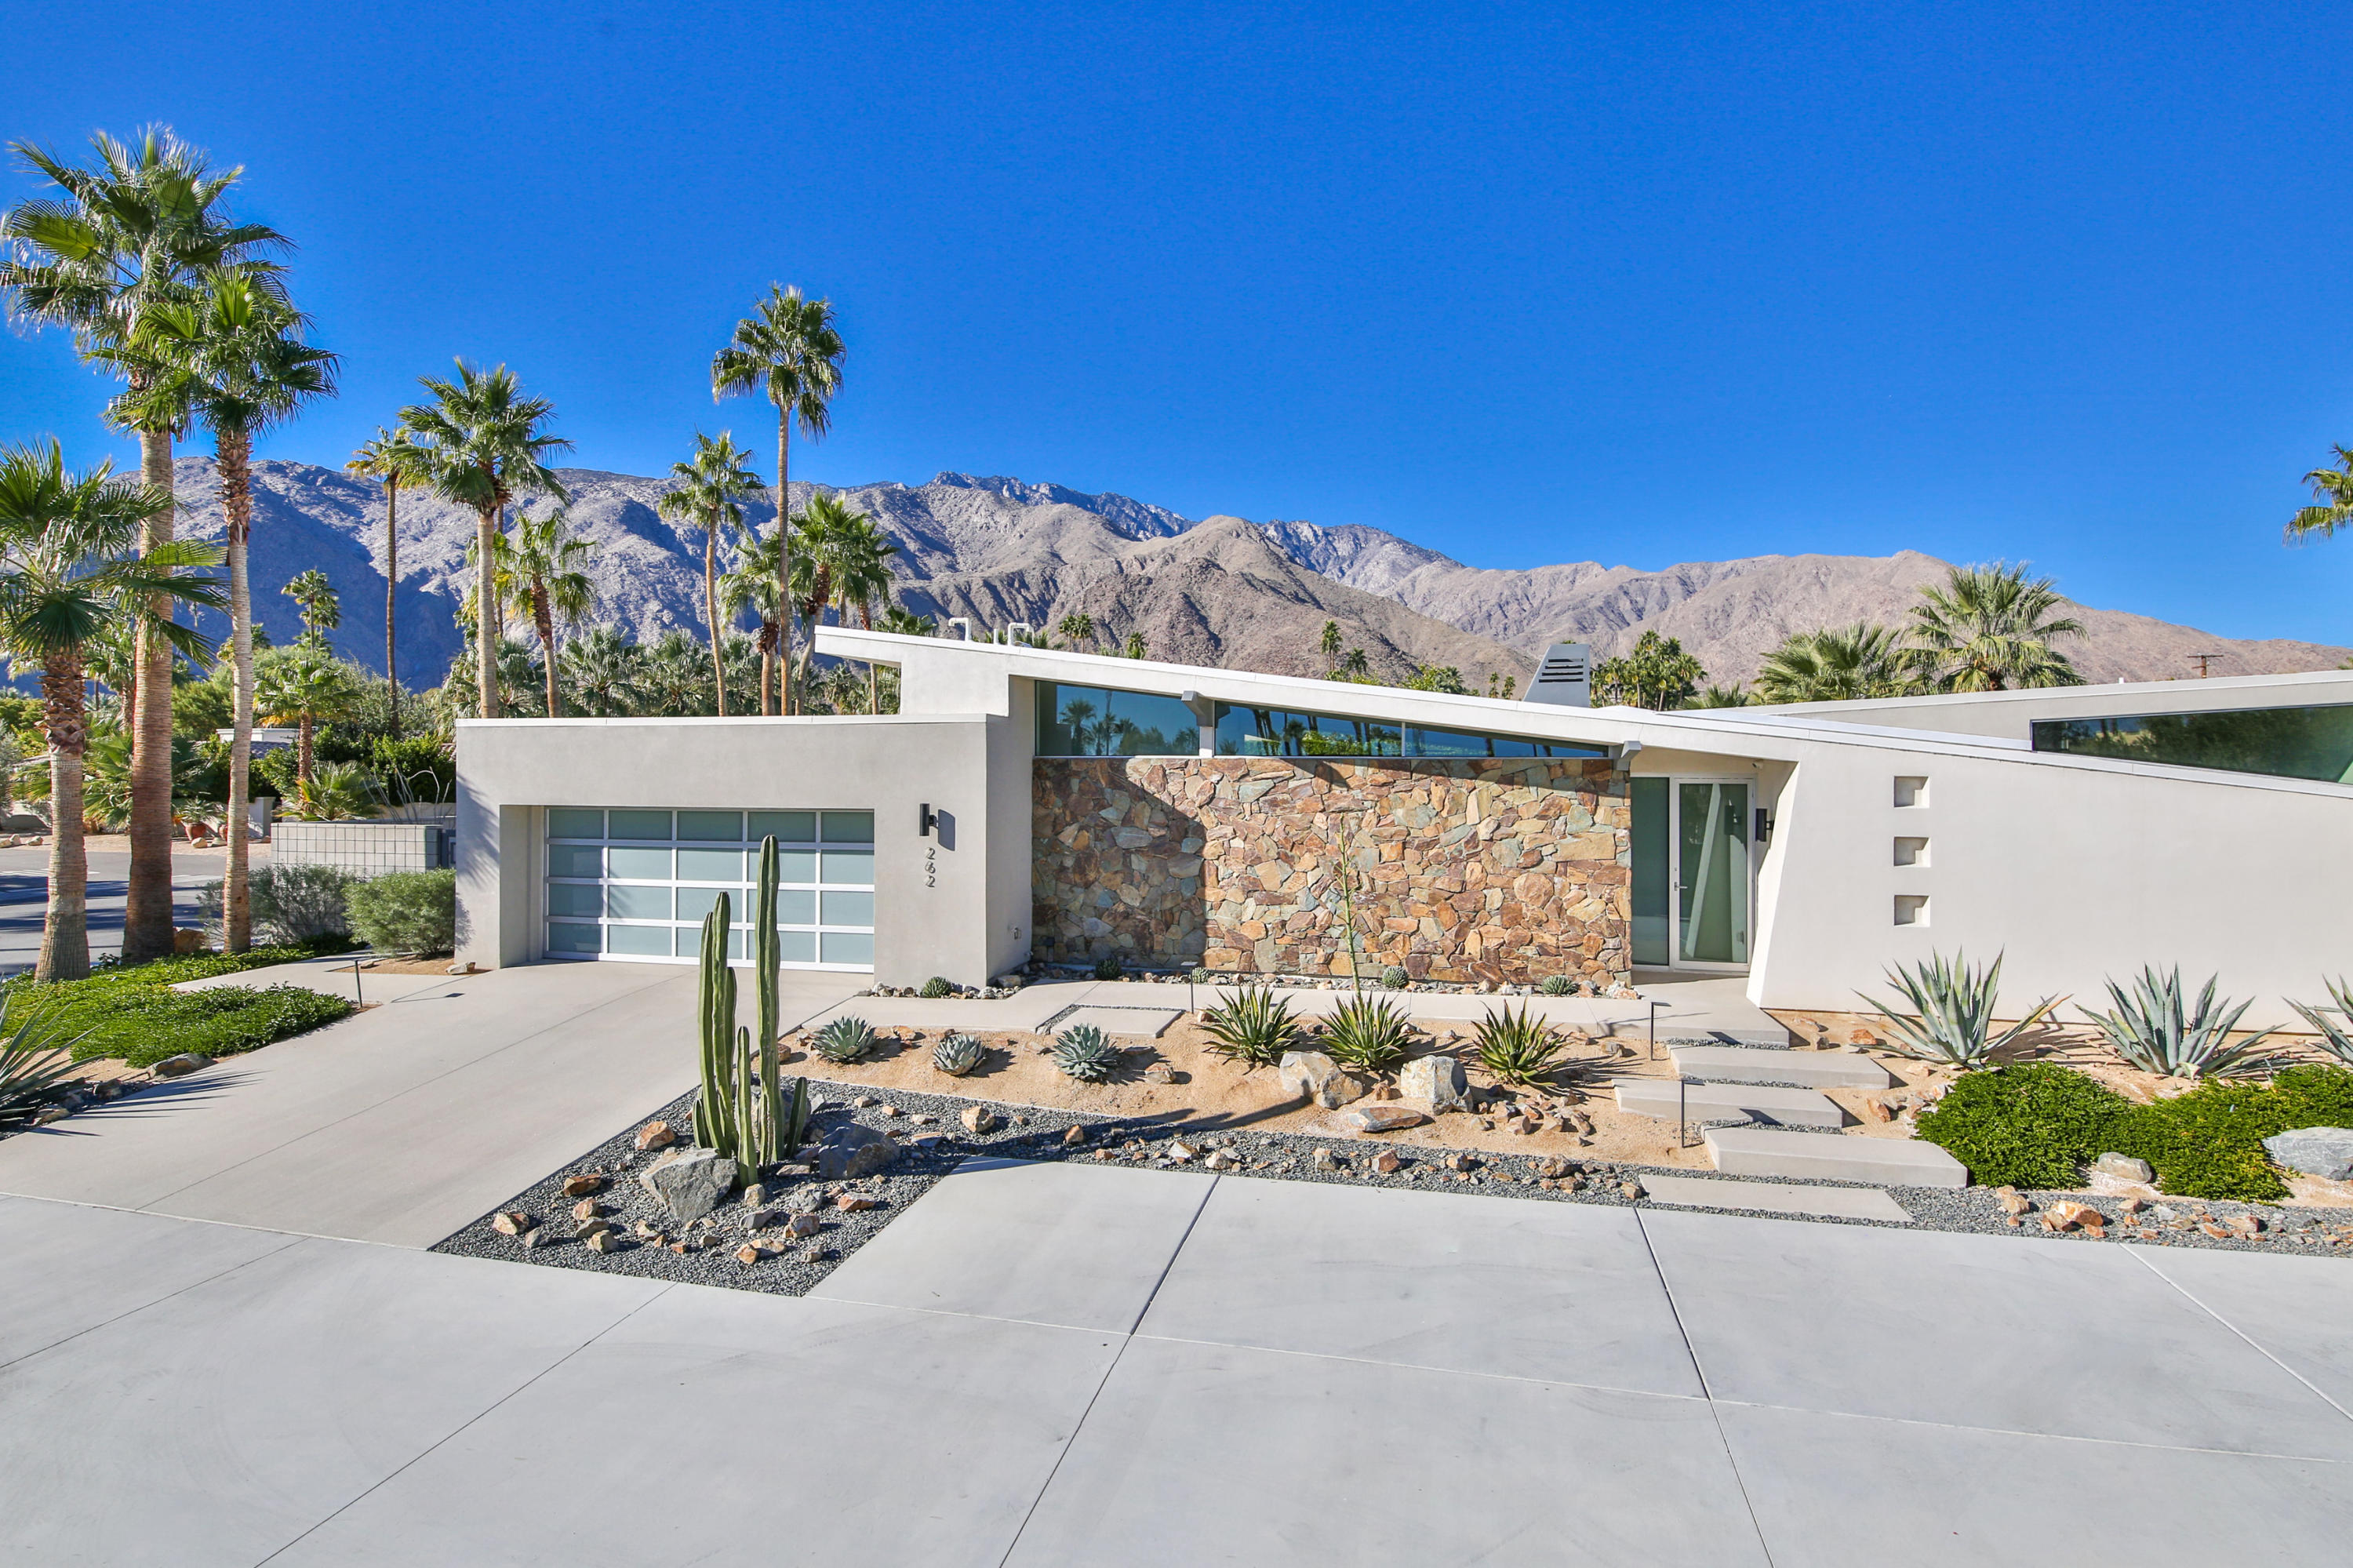 Photo of 262 W Vista Chino, Palm Springs, CA 92262